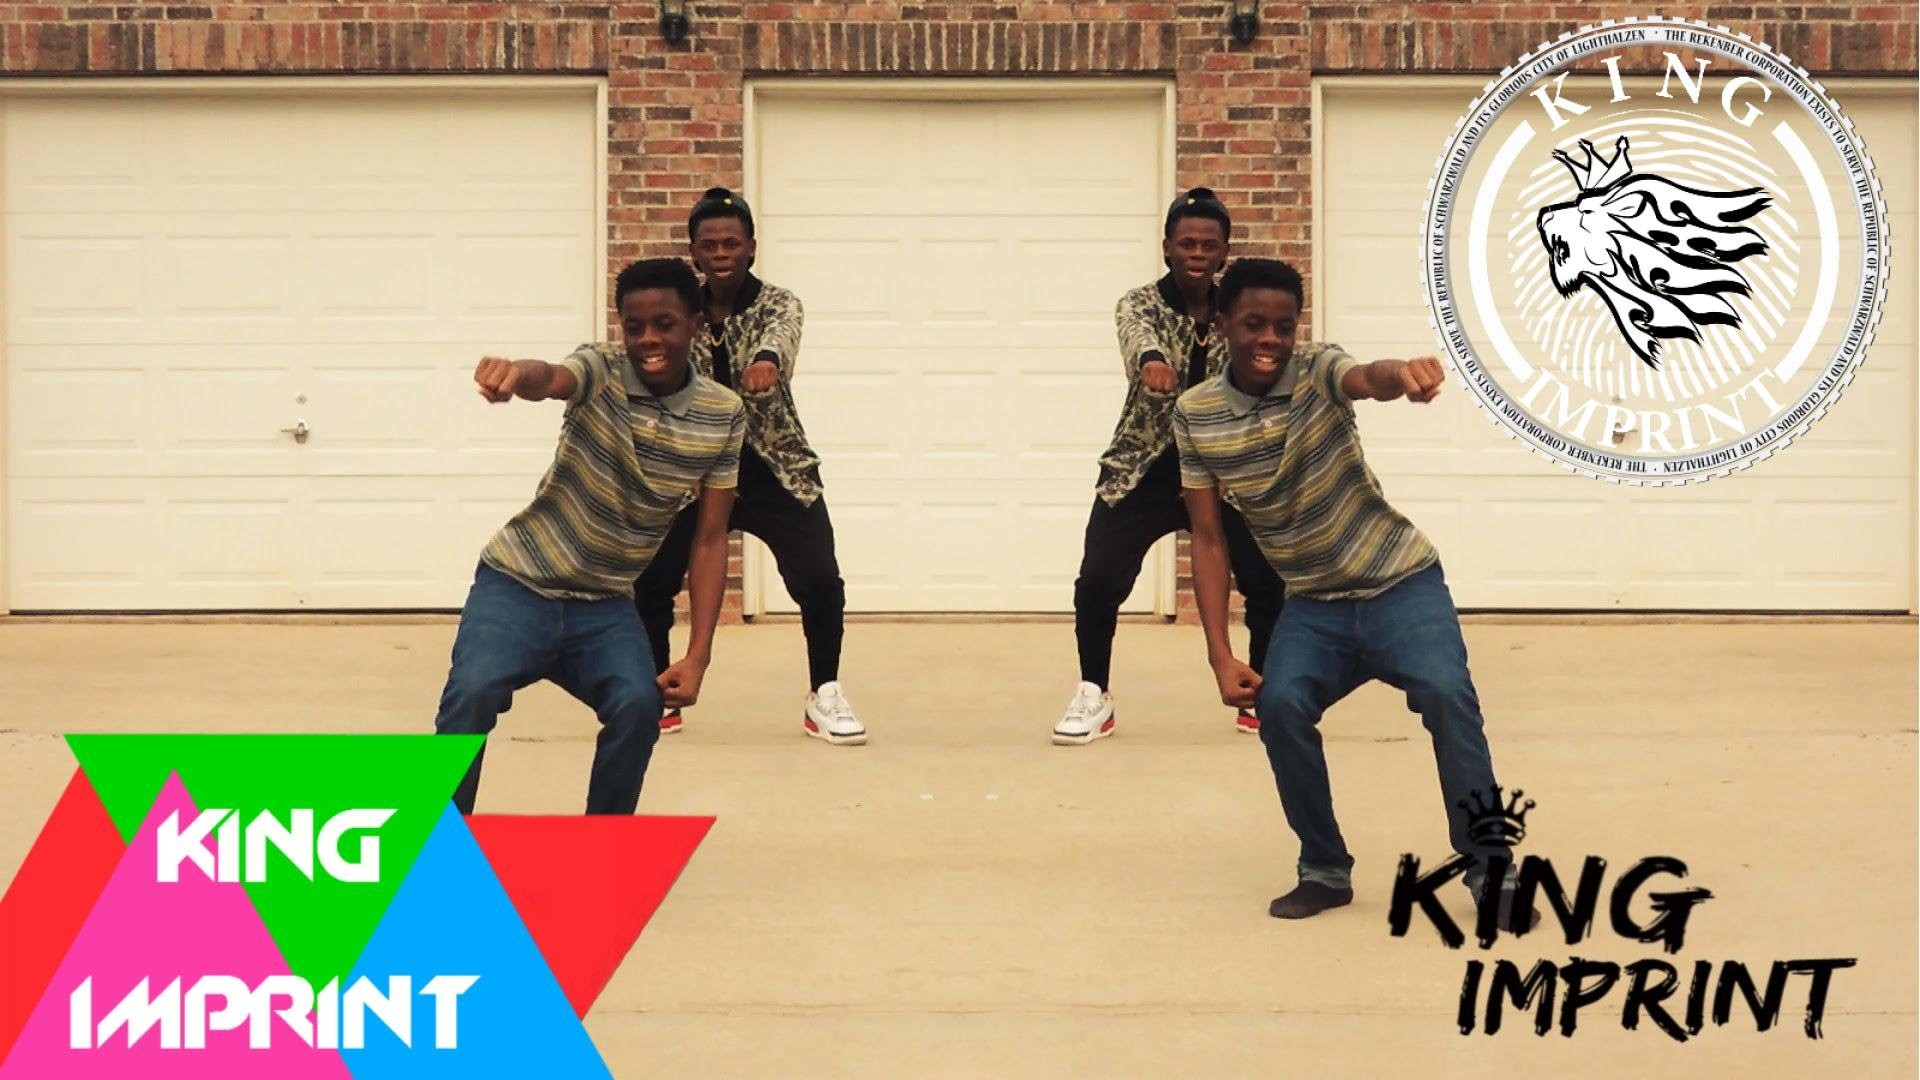 New Dance Whip #Whip (Music Video) *NEW* Whip Dance created by